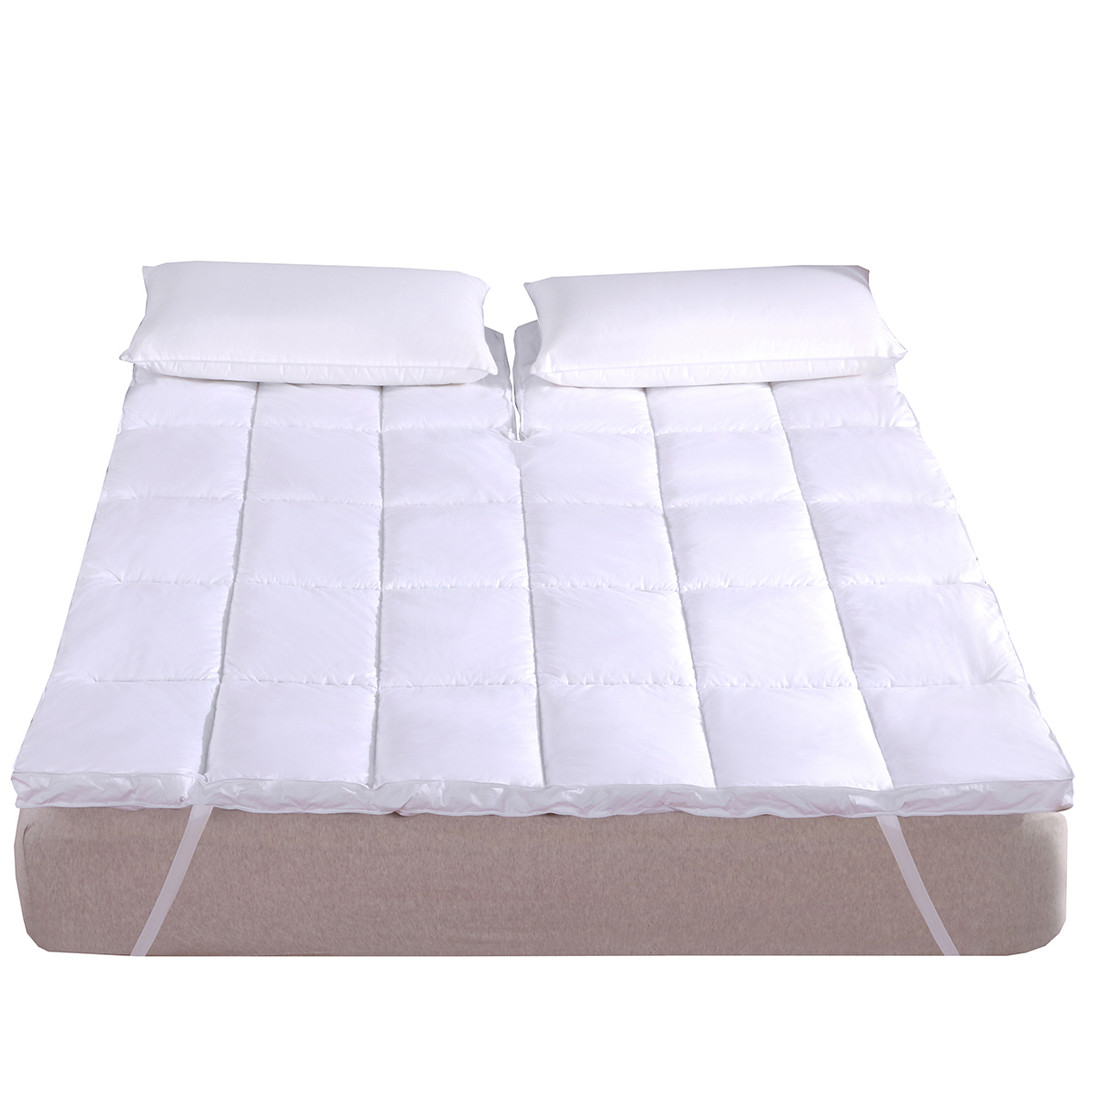 Abripedic Top Split King 2 Inch Thick Comfort Mattress